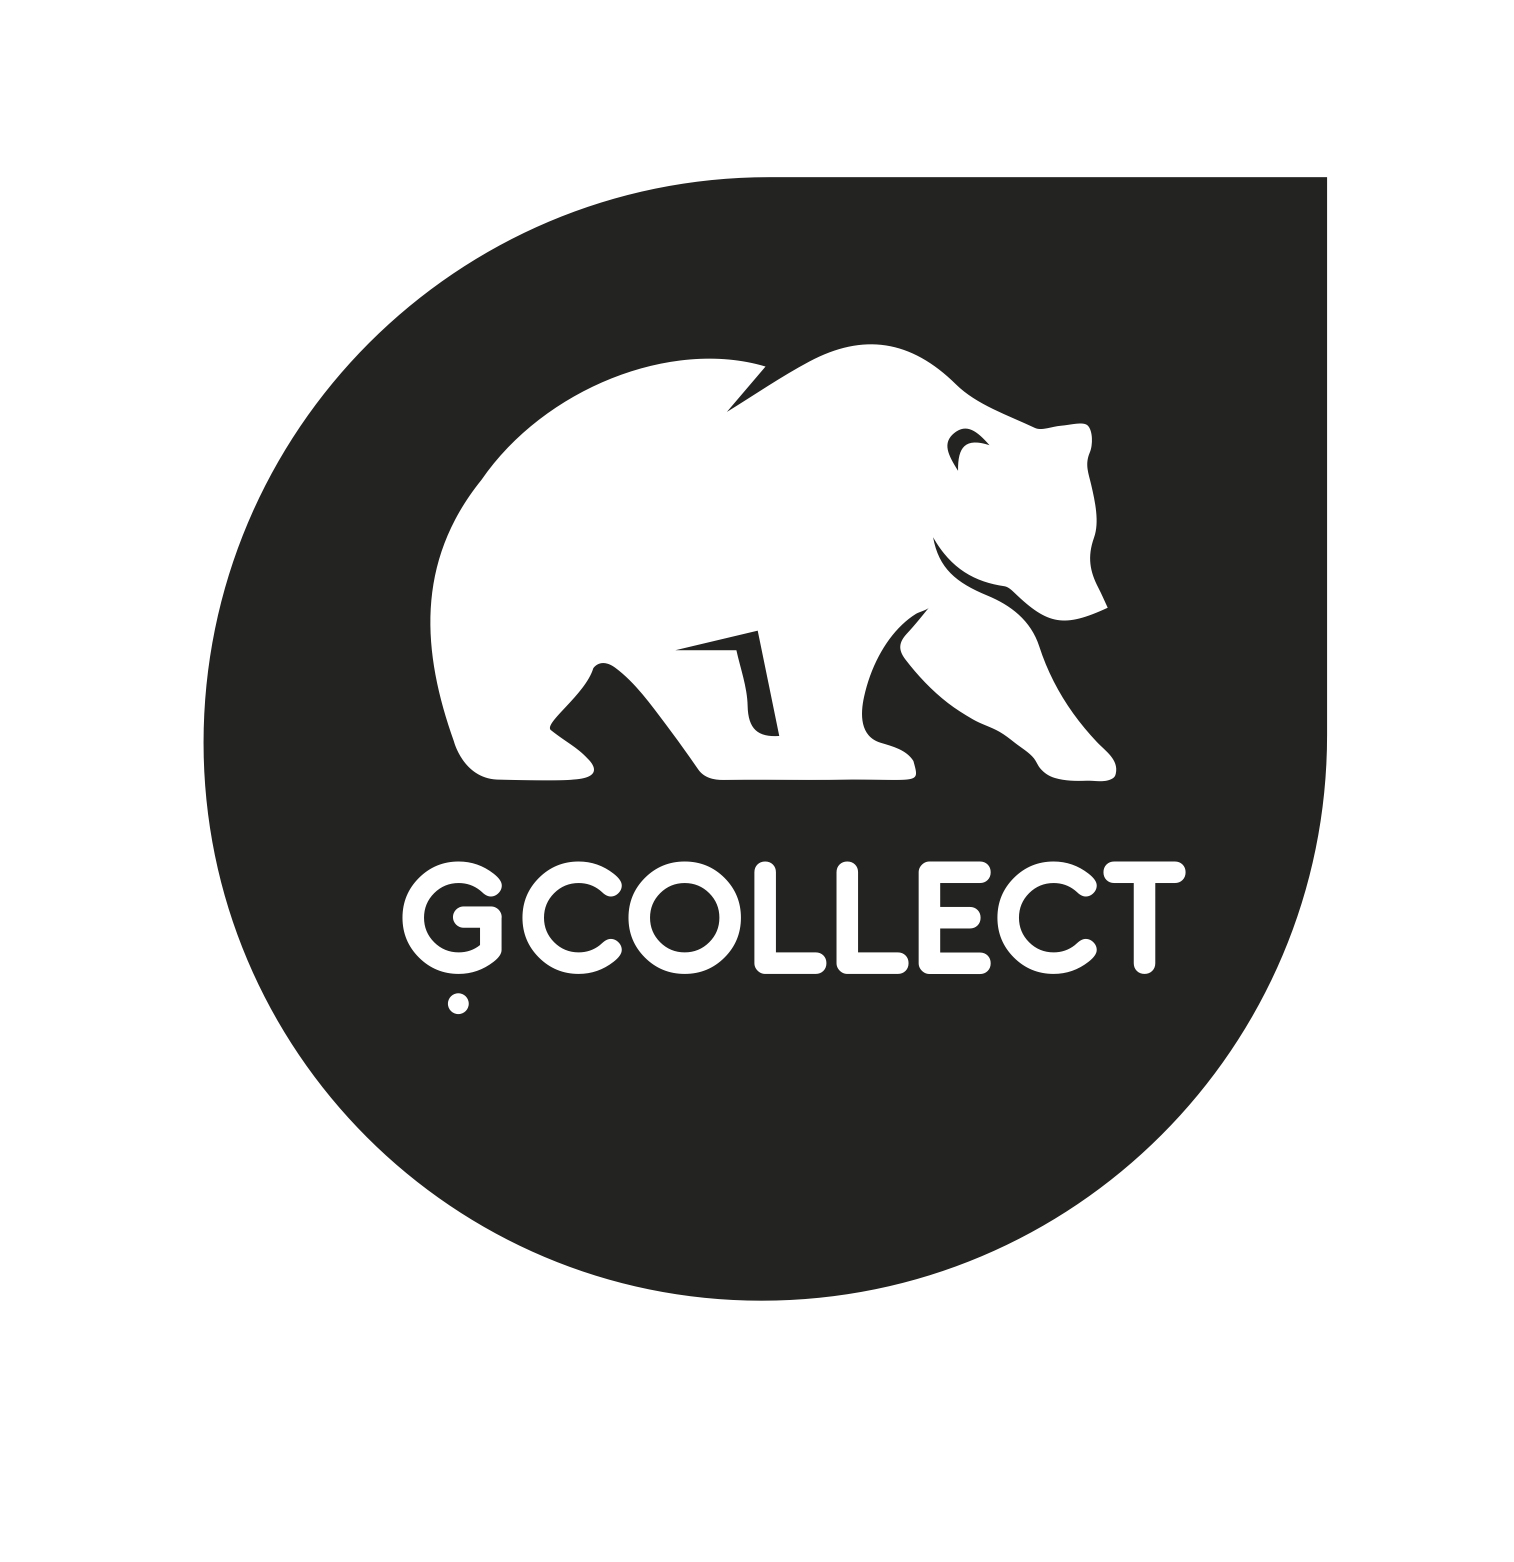 G Collect